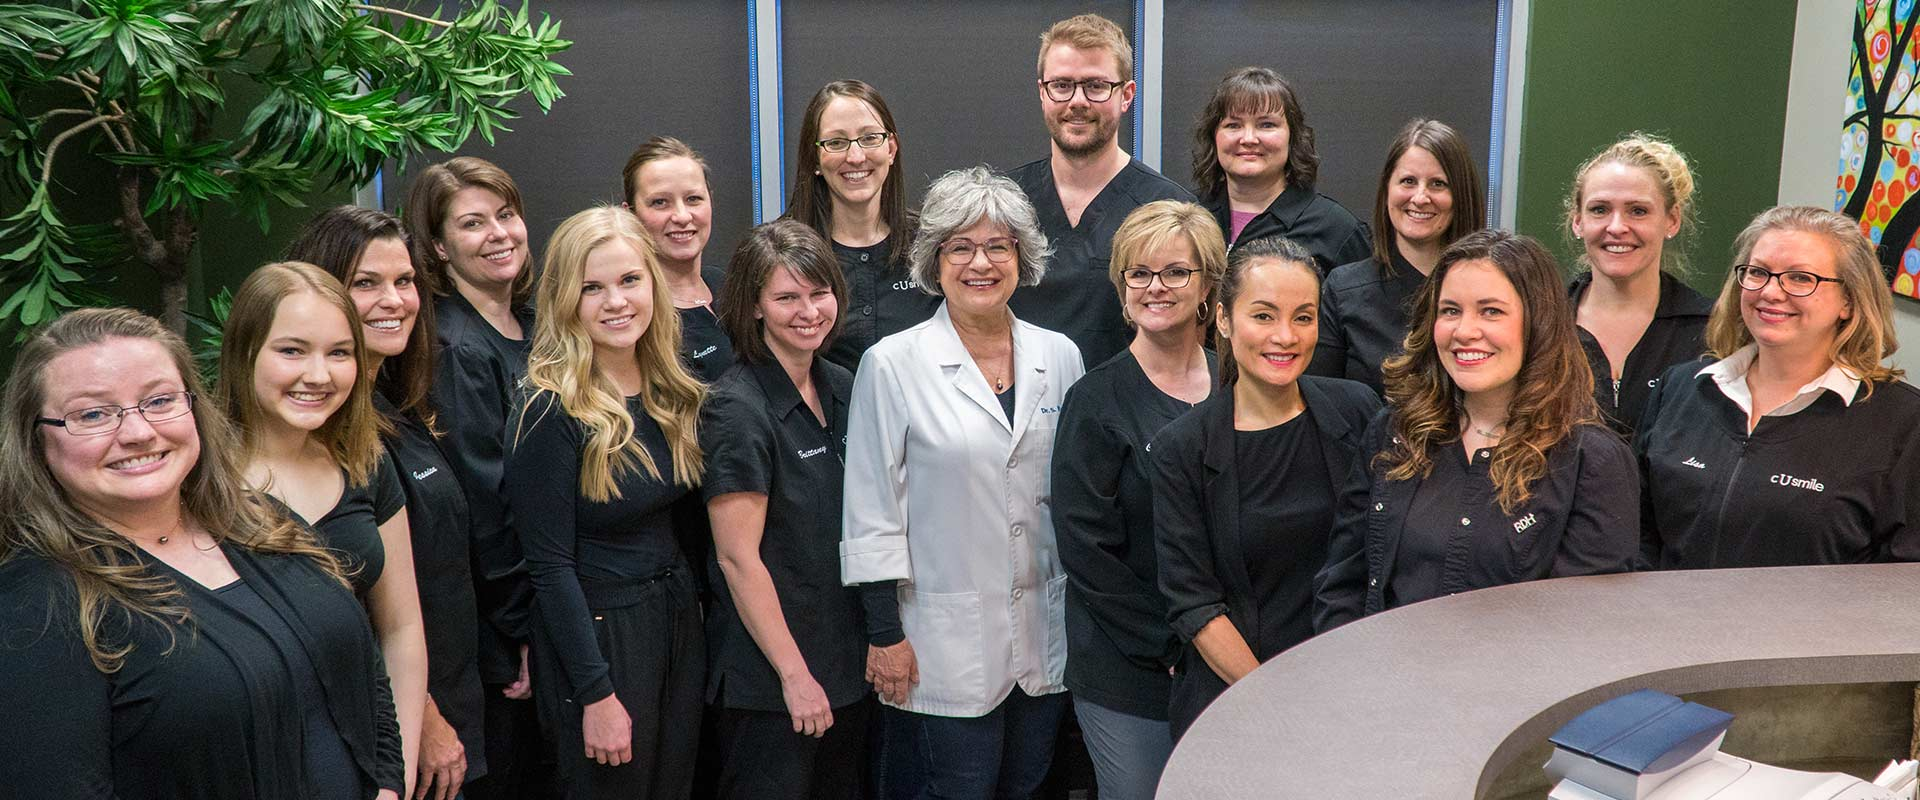 cuSmile Dental Team | SE Calgary Dentist next to Costco in Deerfoot Meadows